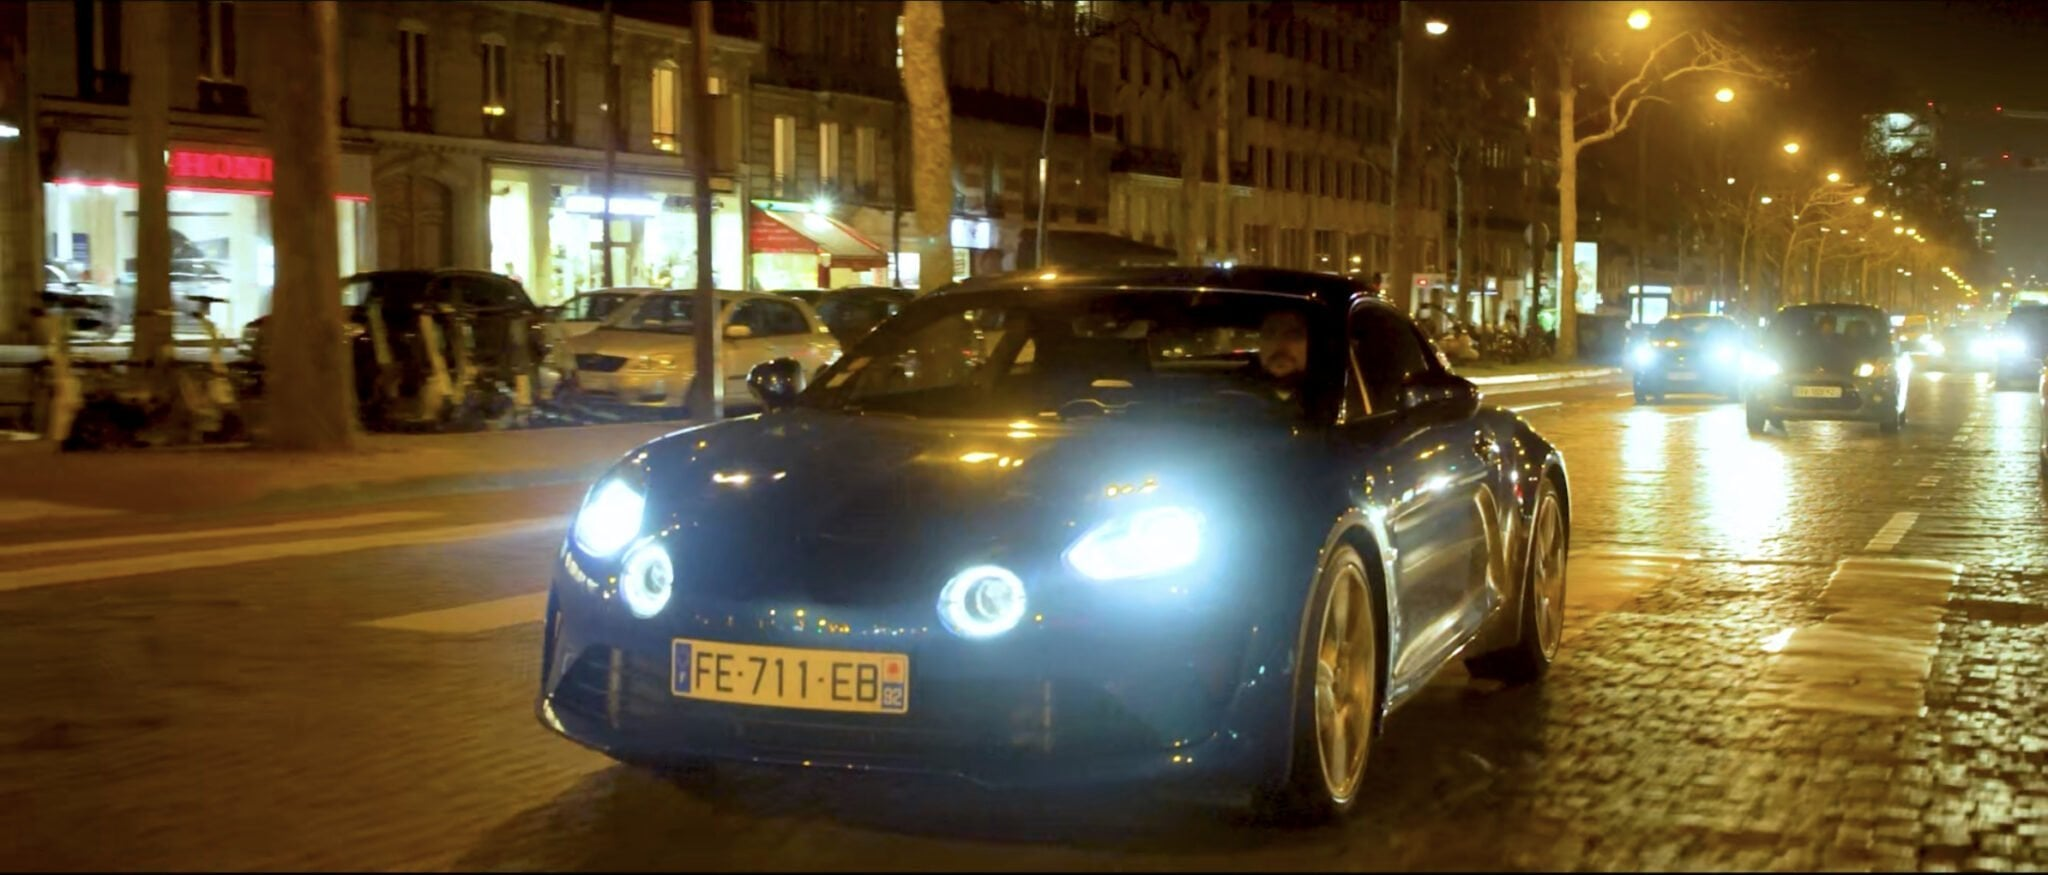 928F0EBF 43CA 44AA 86C6 FAF831B10CDE | A l'essai : Alpine A110, des sensations Pures.